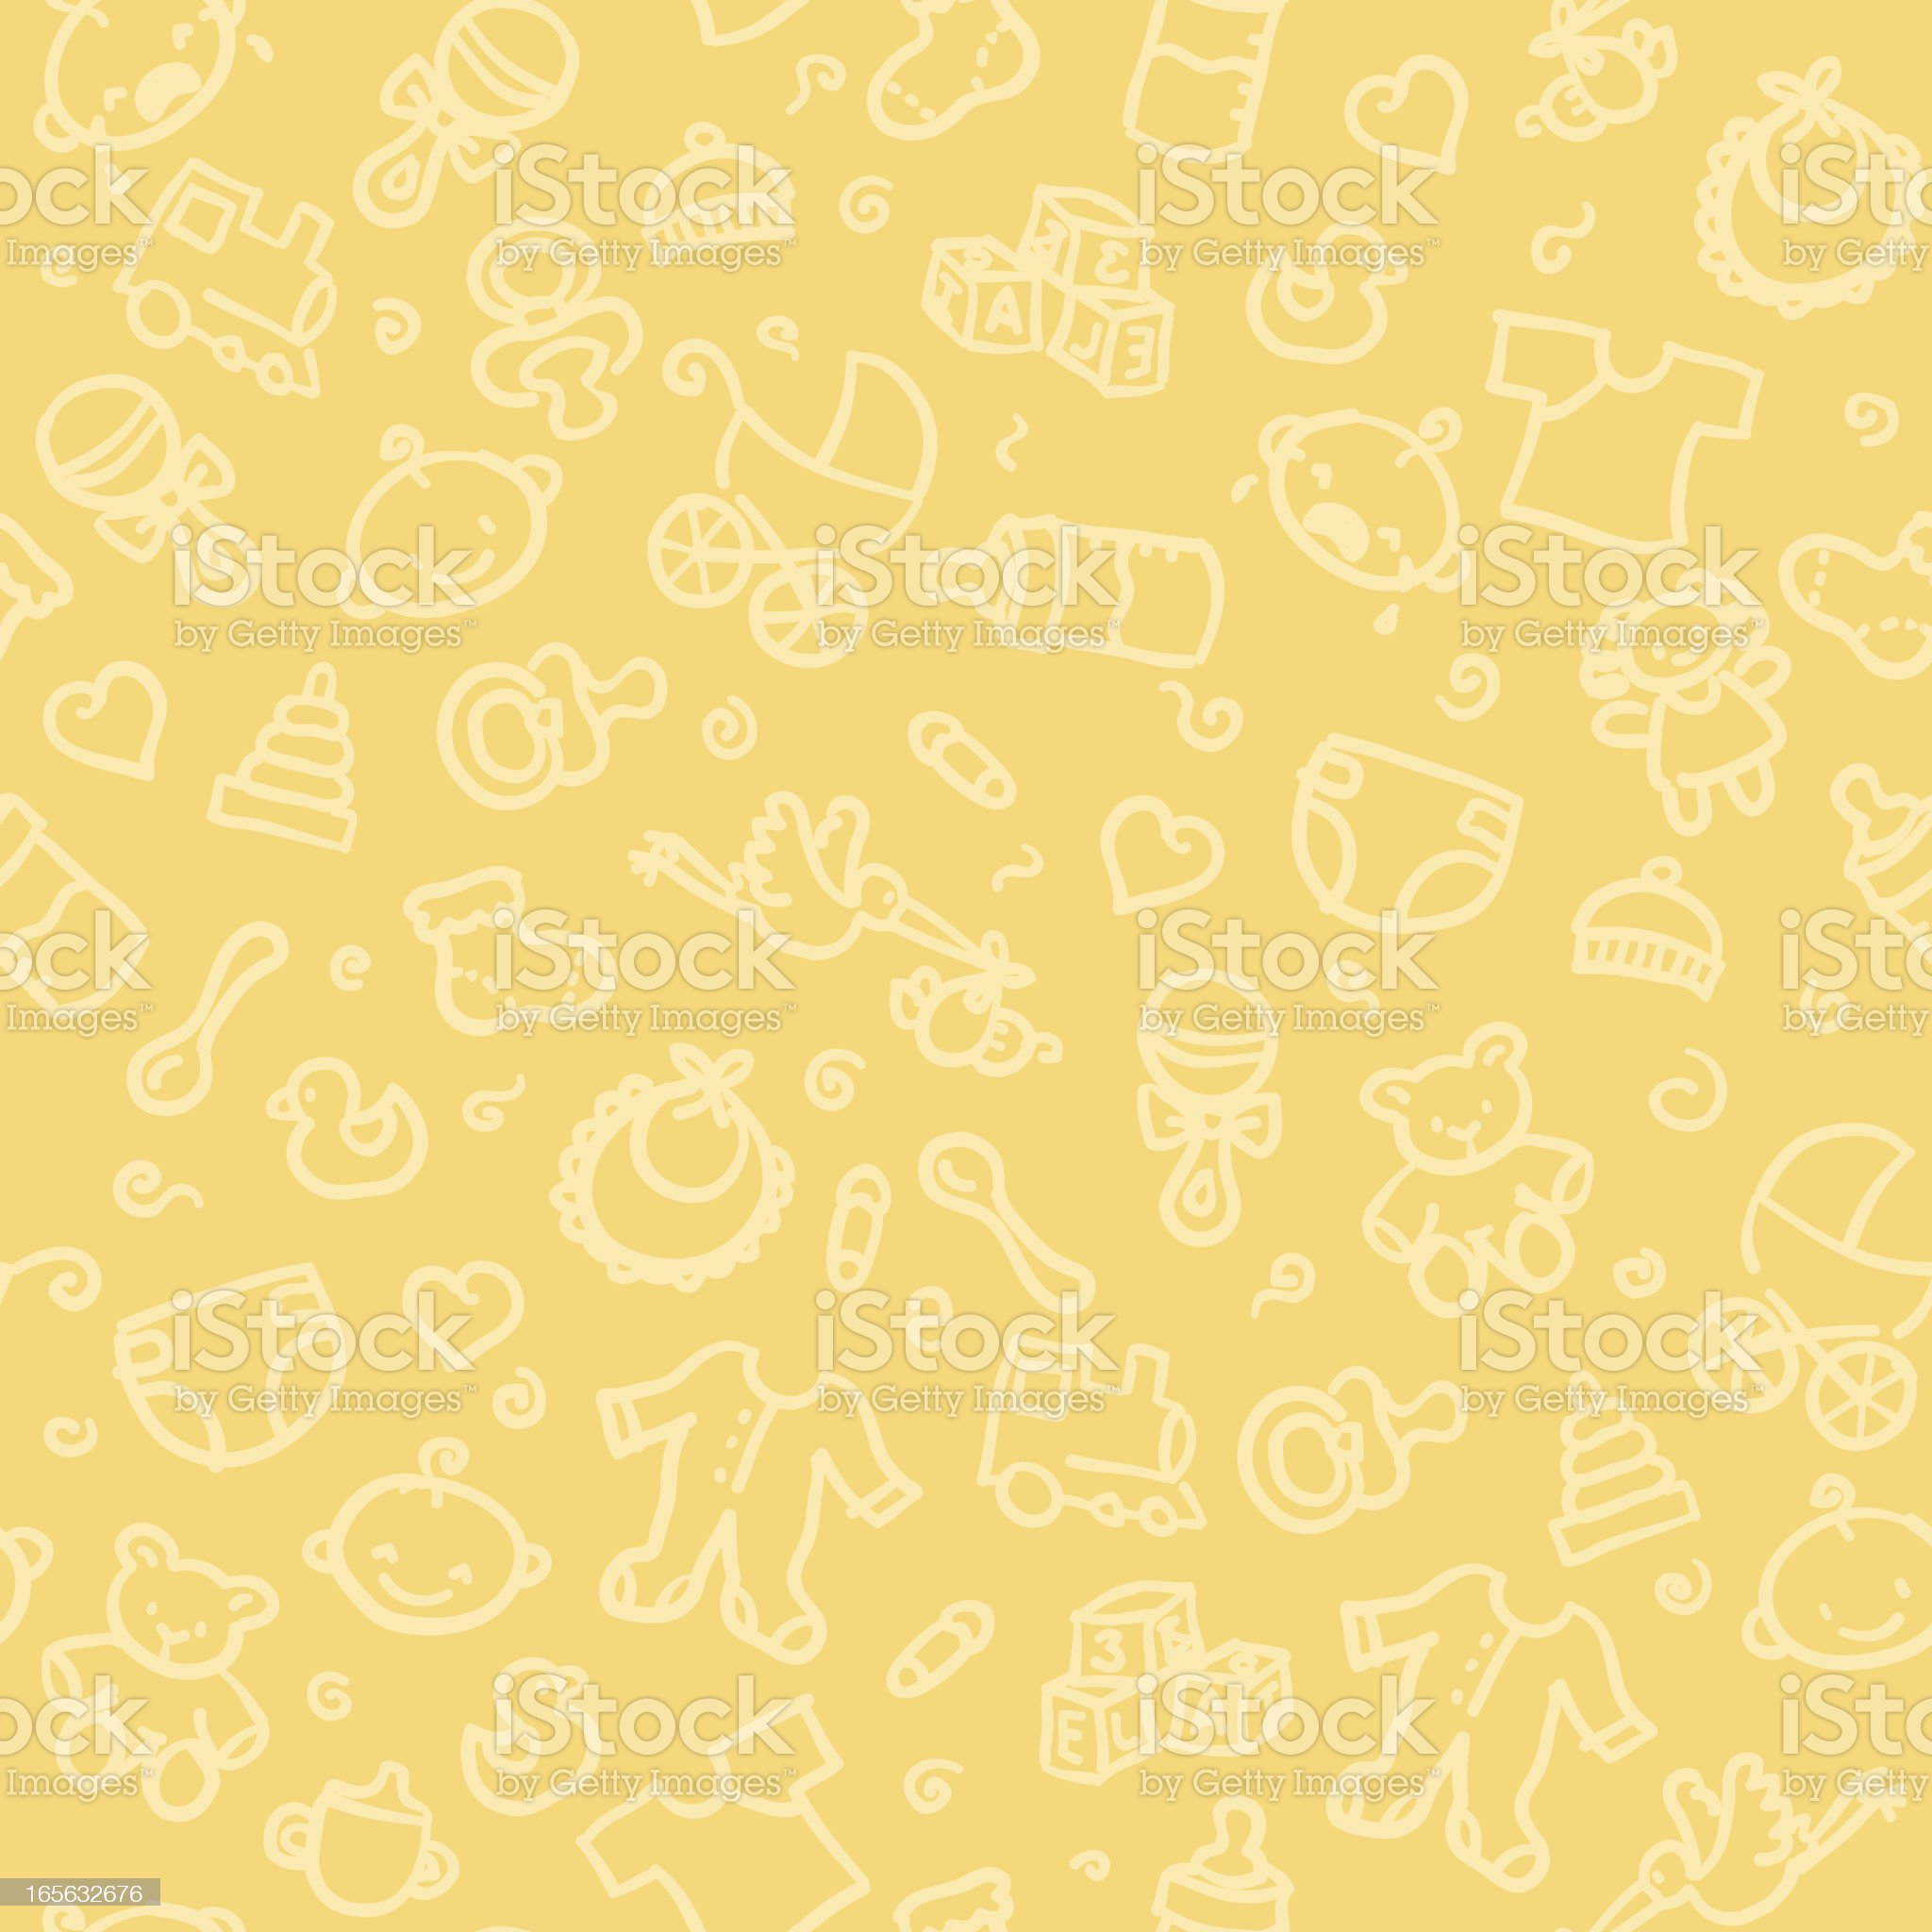 Seamless pattern of baby supplies royalty-free stock vector art